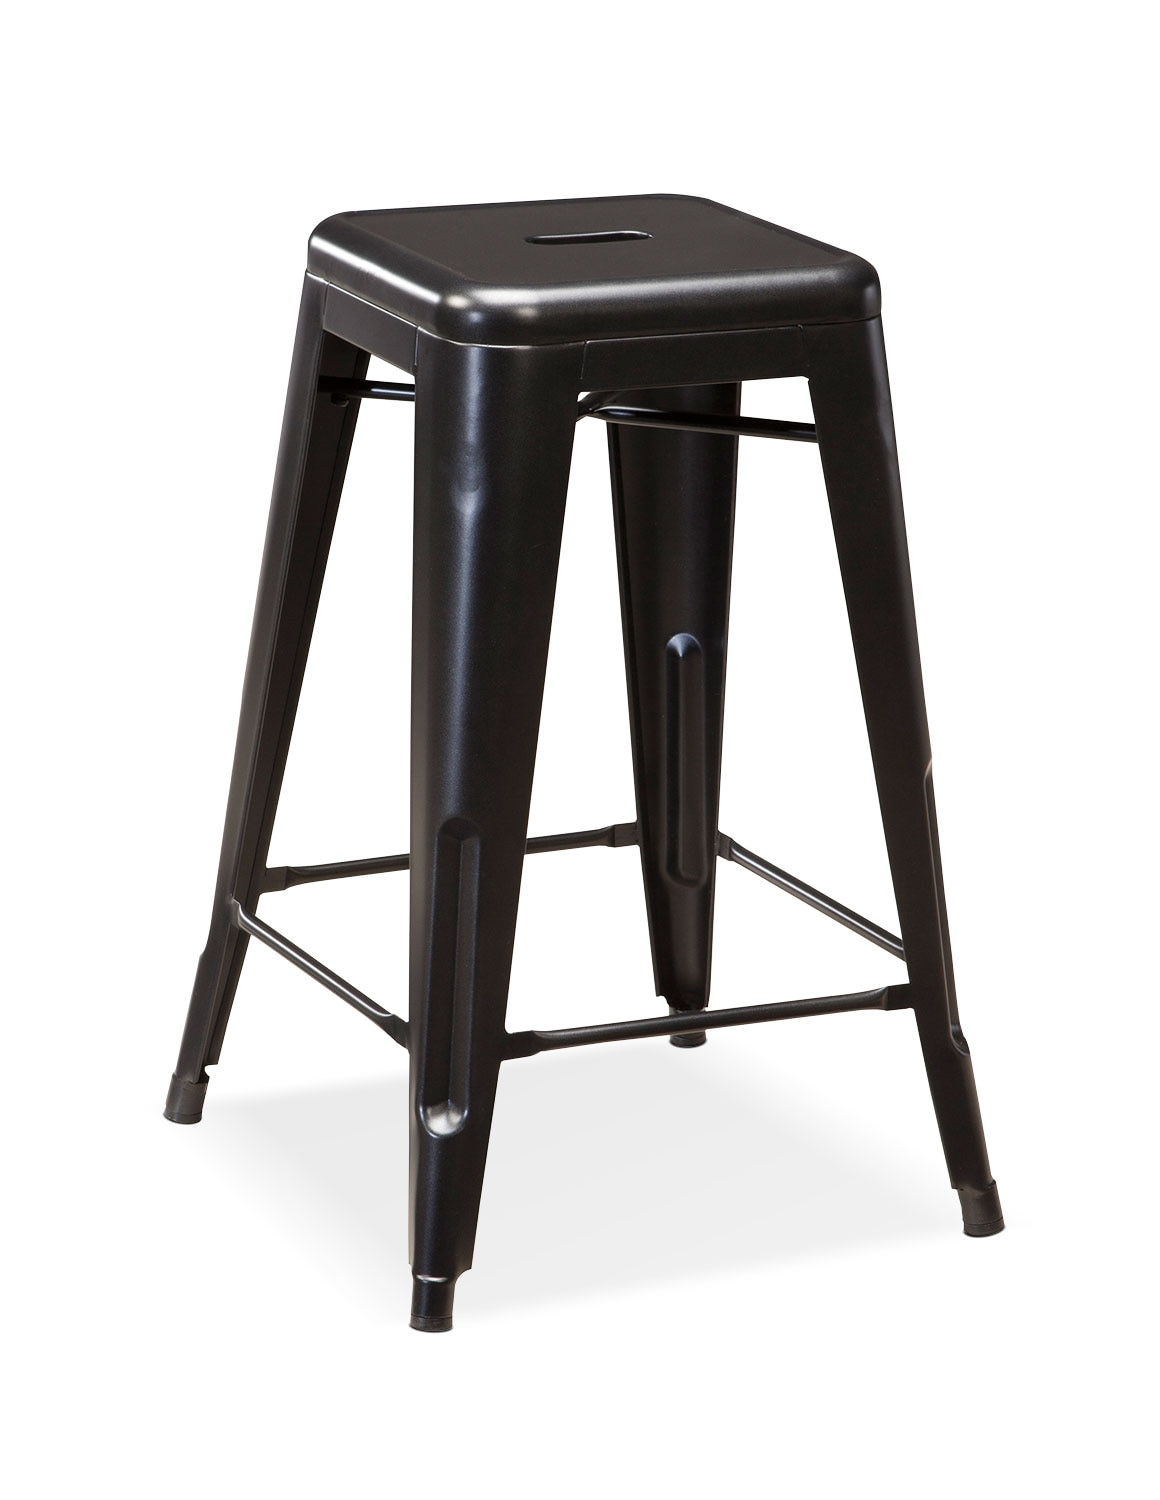 Pinnadel Stackable Counter-Height Stool